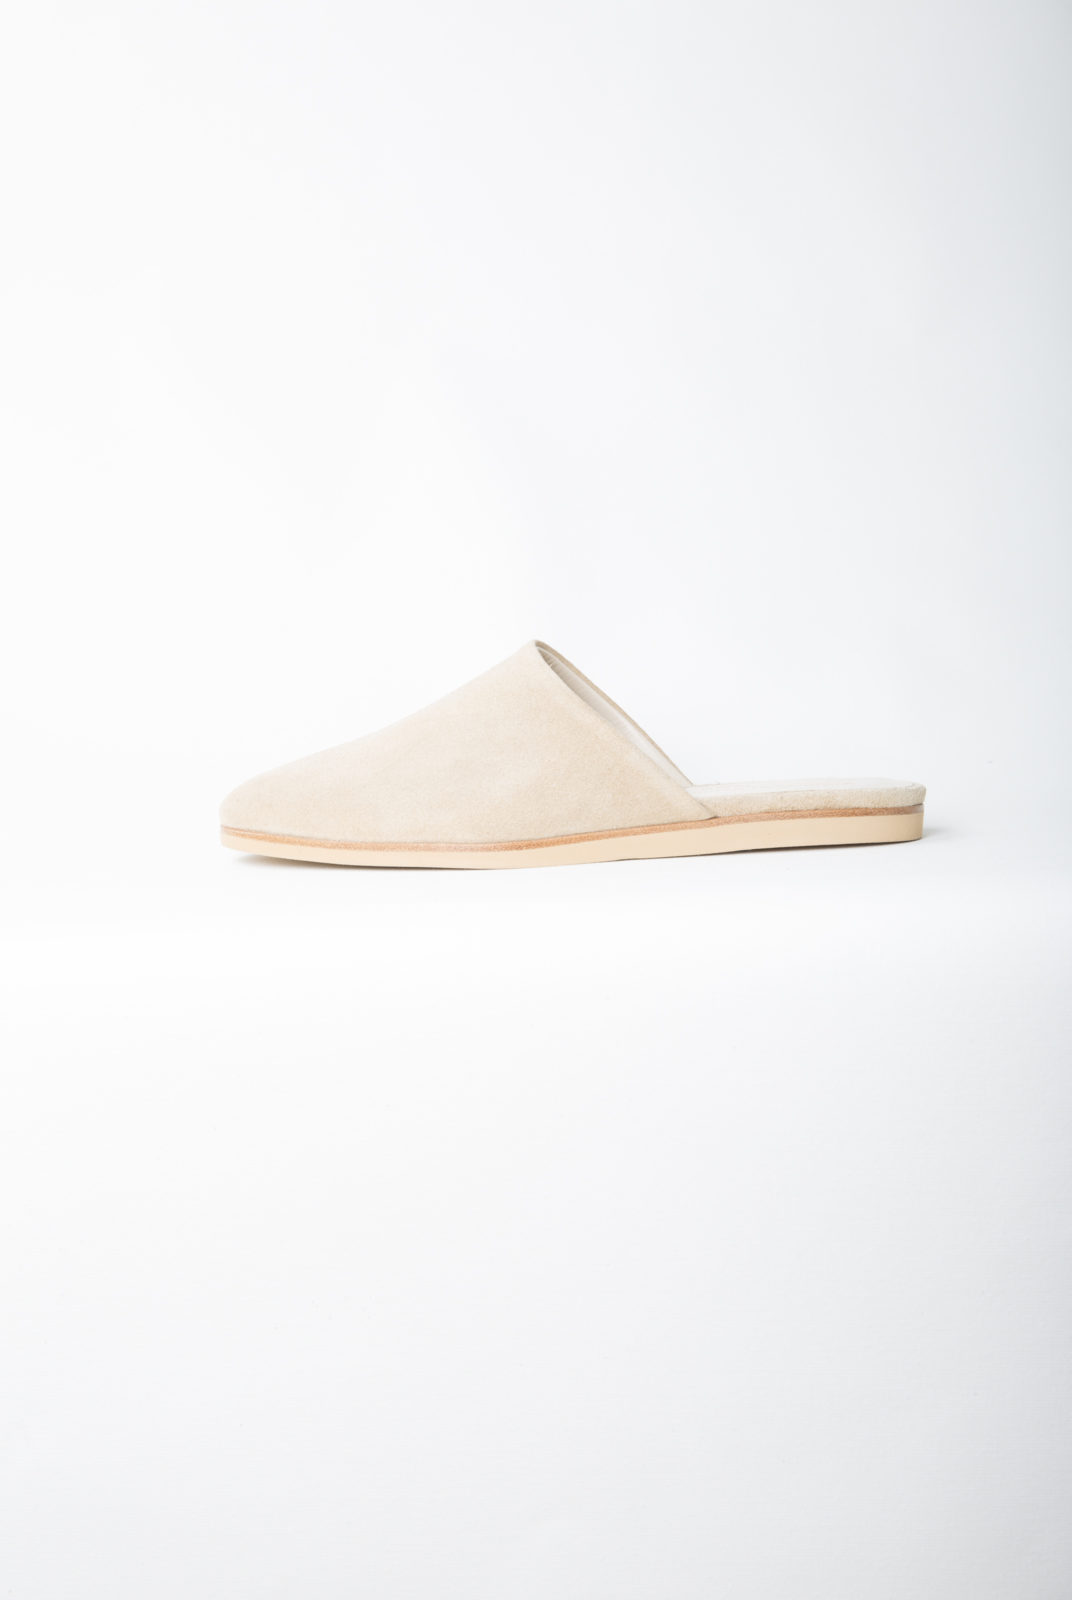 slip on, tan, fermée, plate, common projects